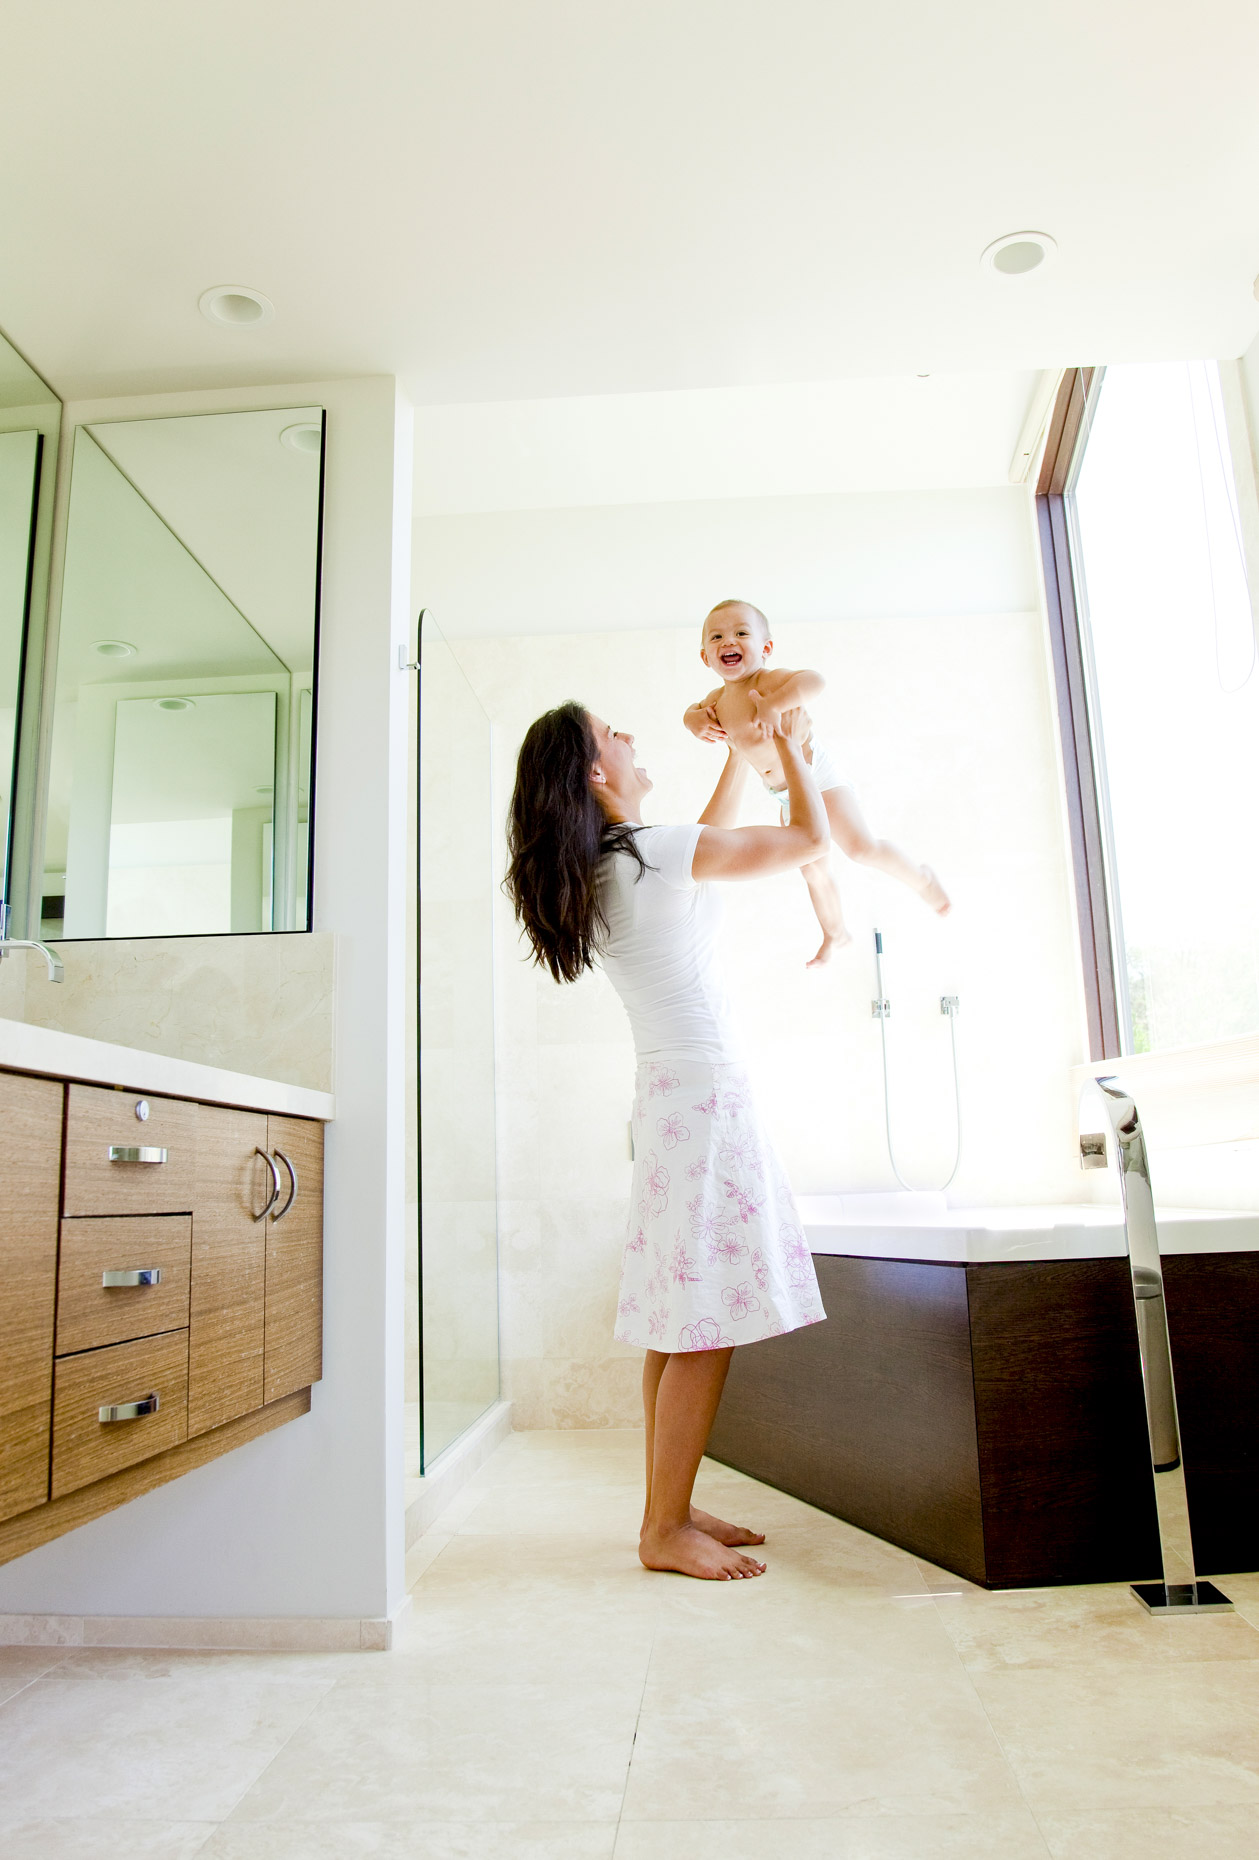 Mom lifting smiling baby overhead in bathroom